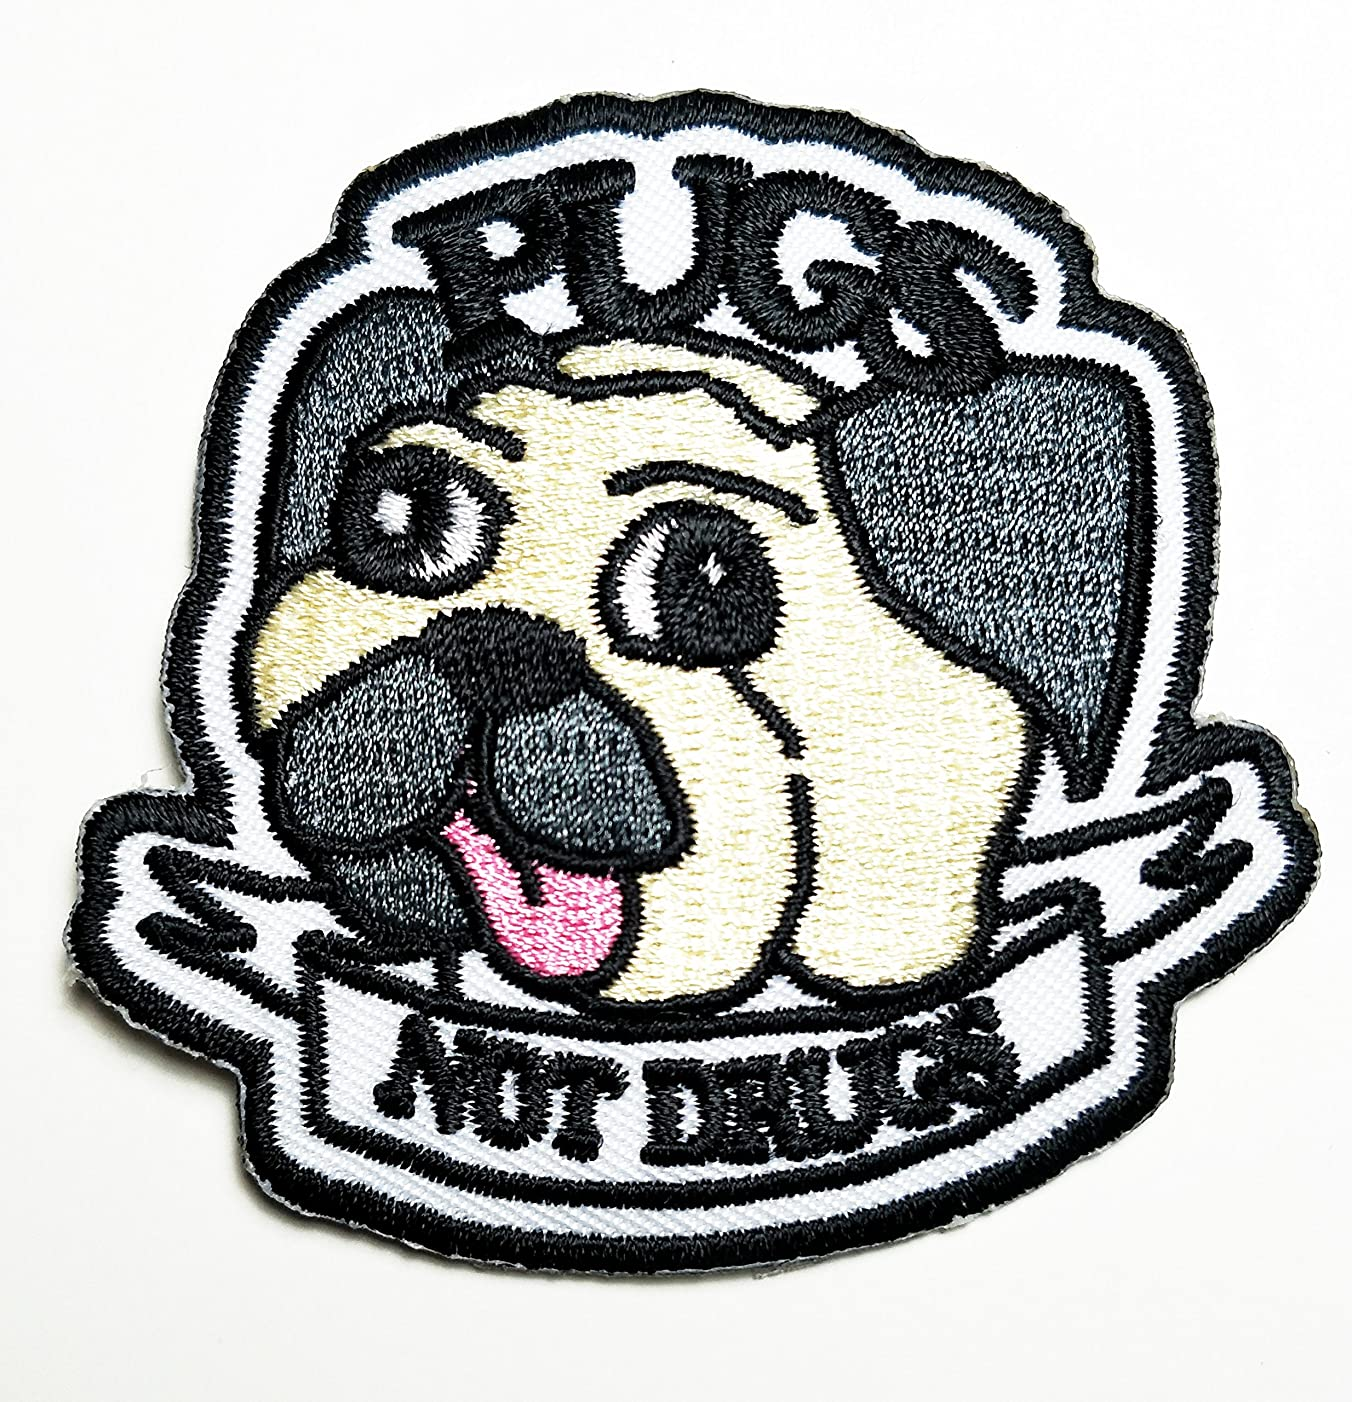 HHO Pugs Not Drugs patch Pugs Not Drugs cartoon Patch Embroidered DIY Patches, Cute Applique Sew Iron on Kids Craft Patch for Bags Jackets Jeans Clothes